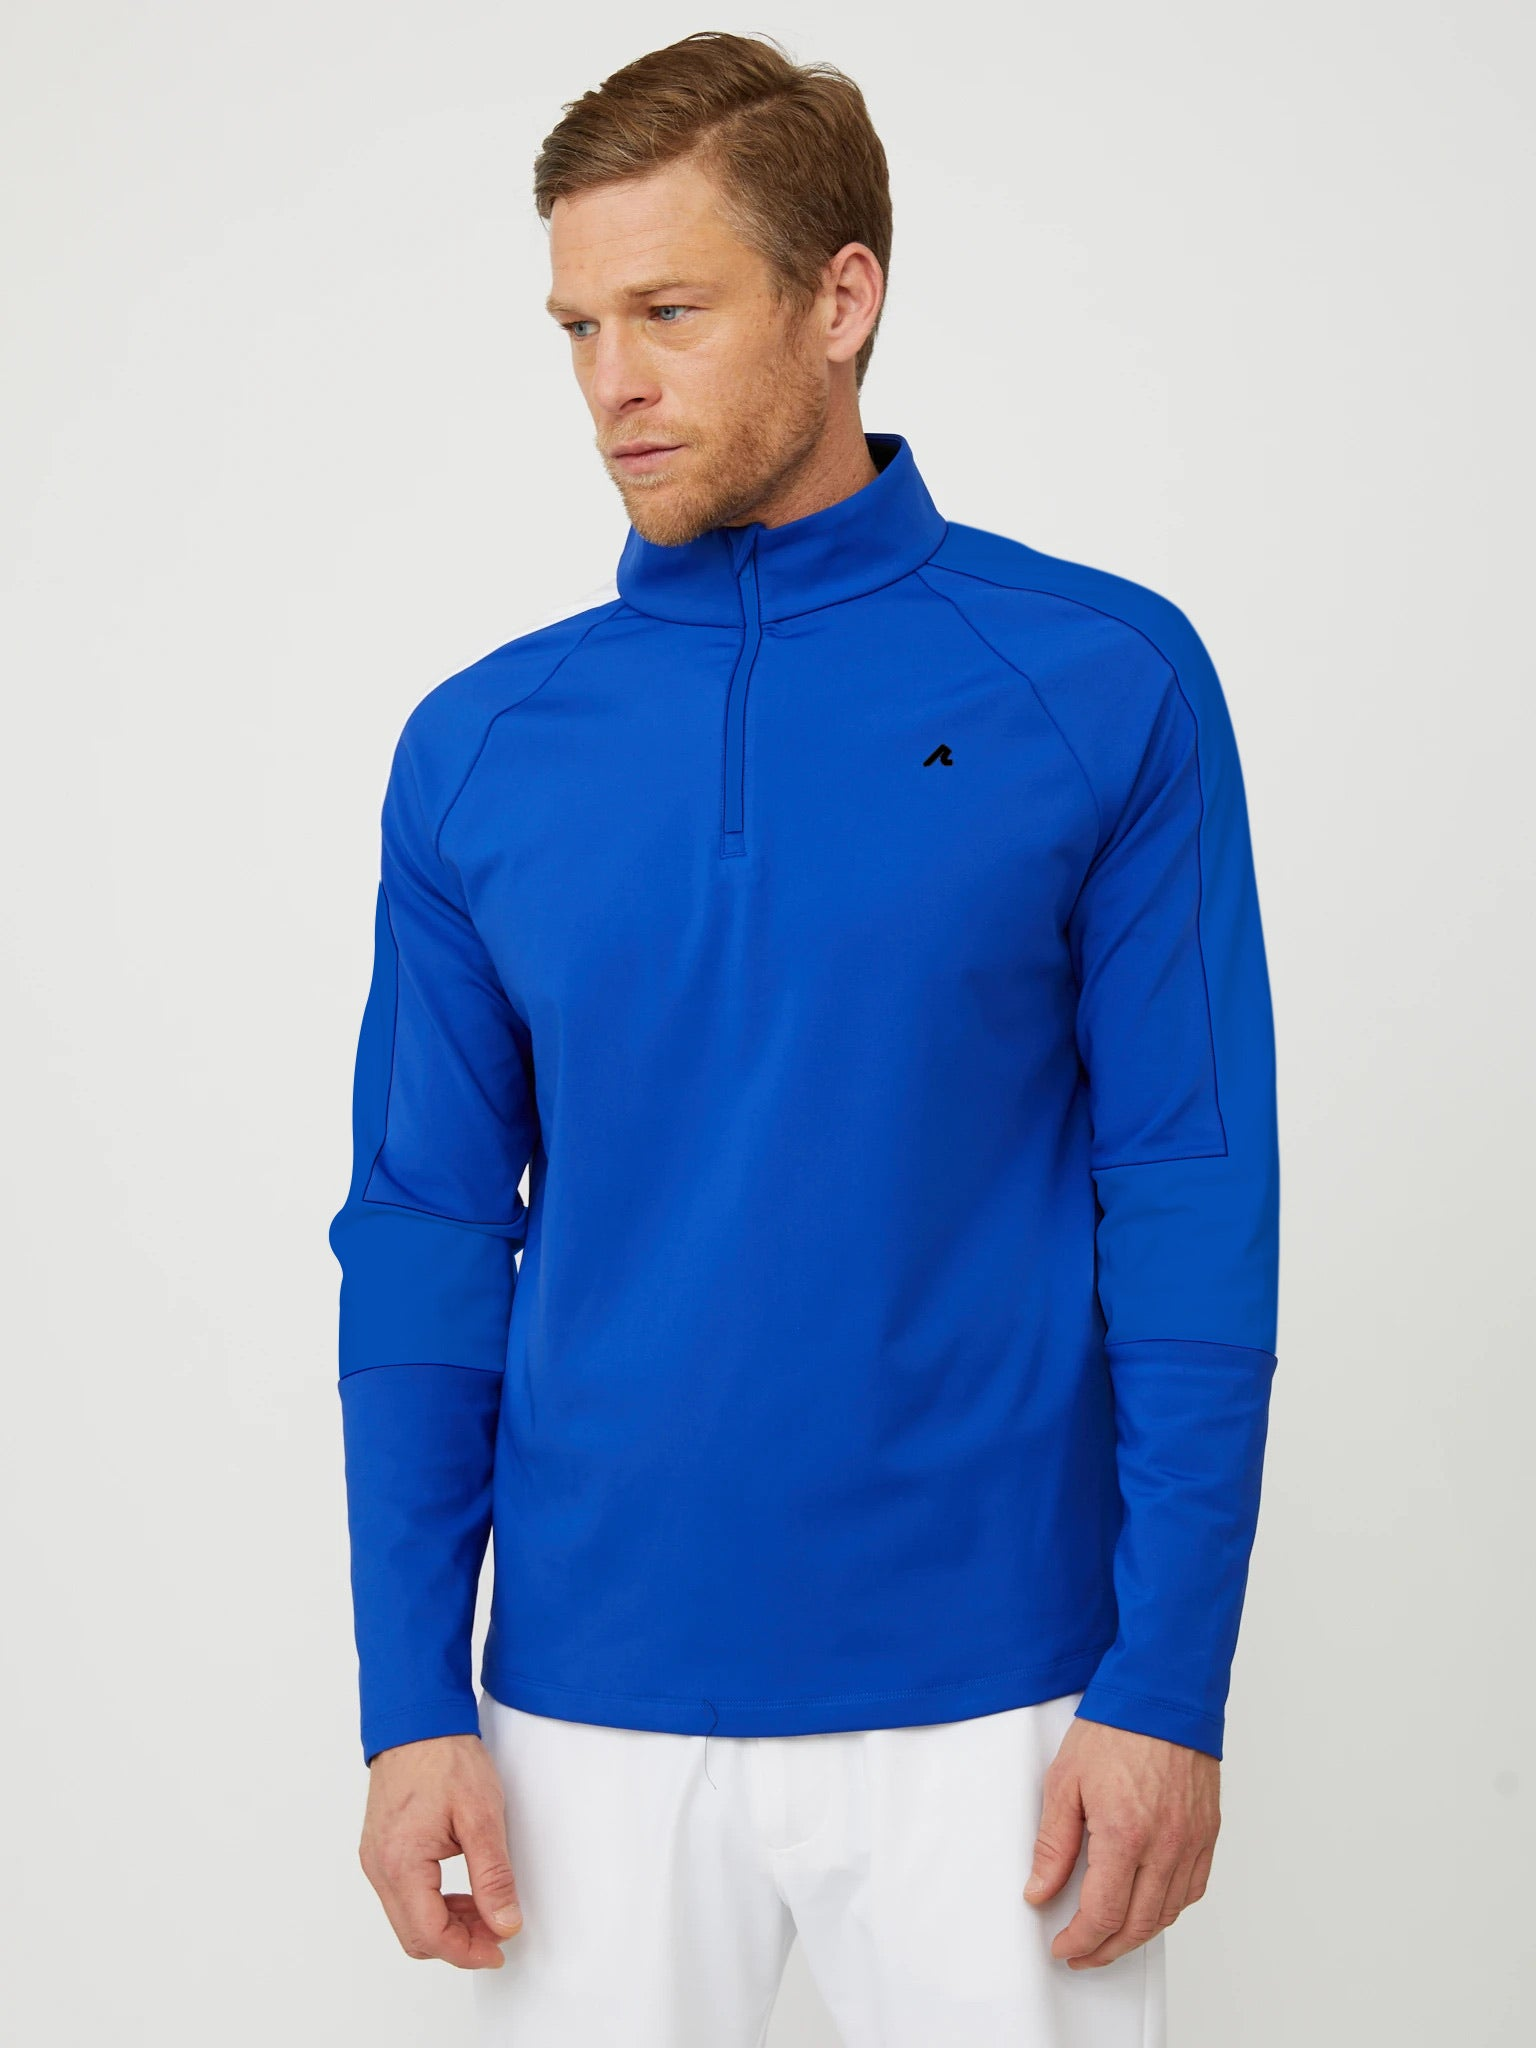 Costa Quarter Zip in Reflex Blue